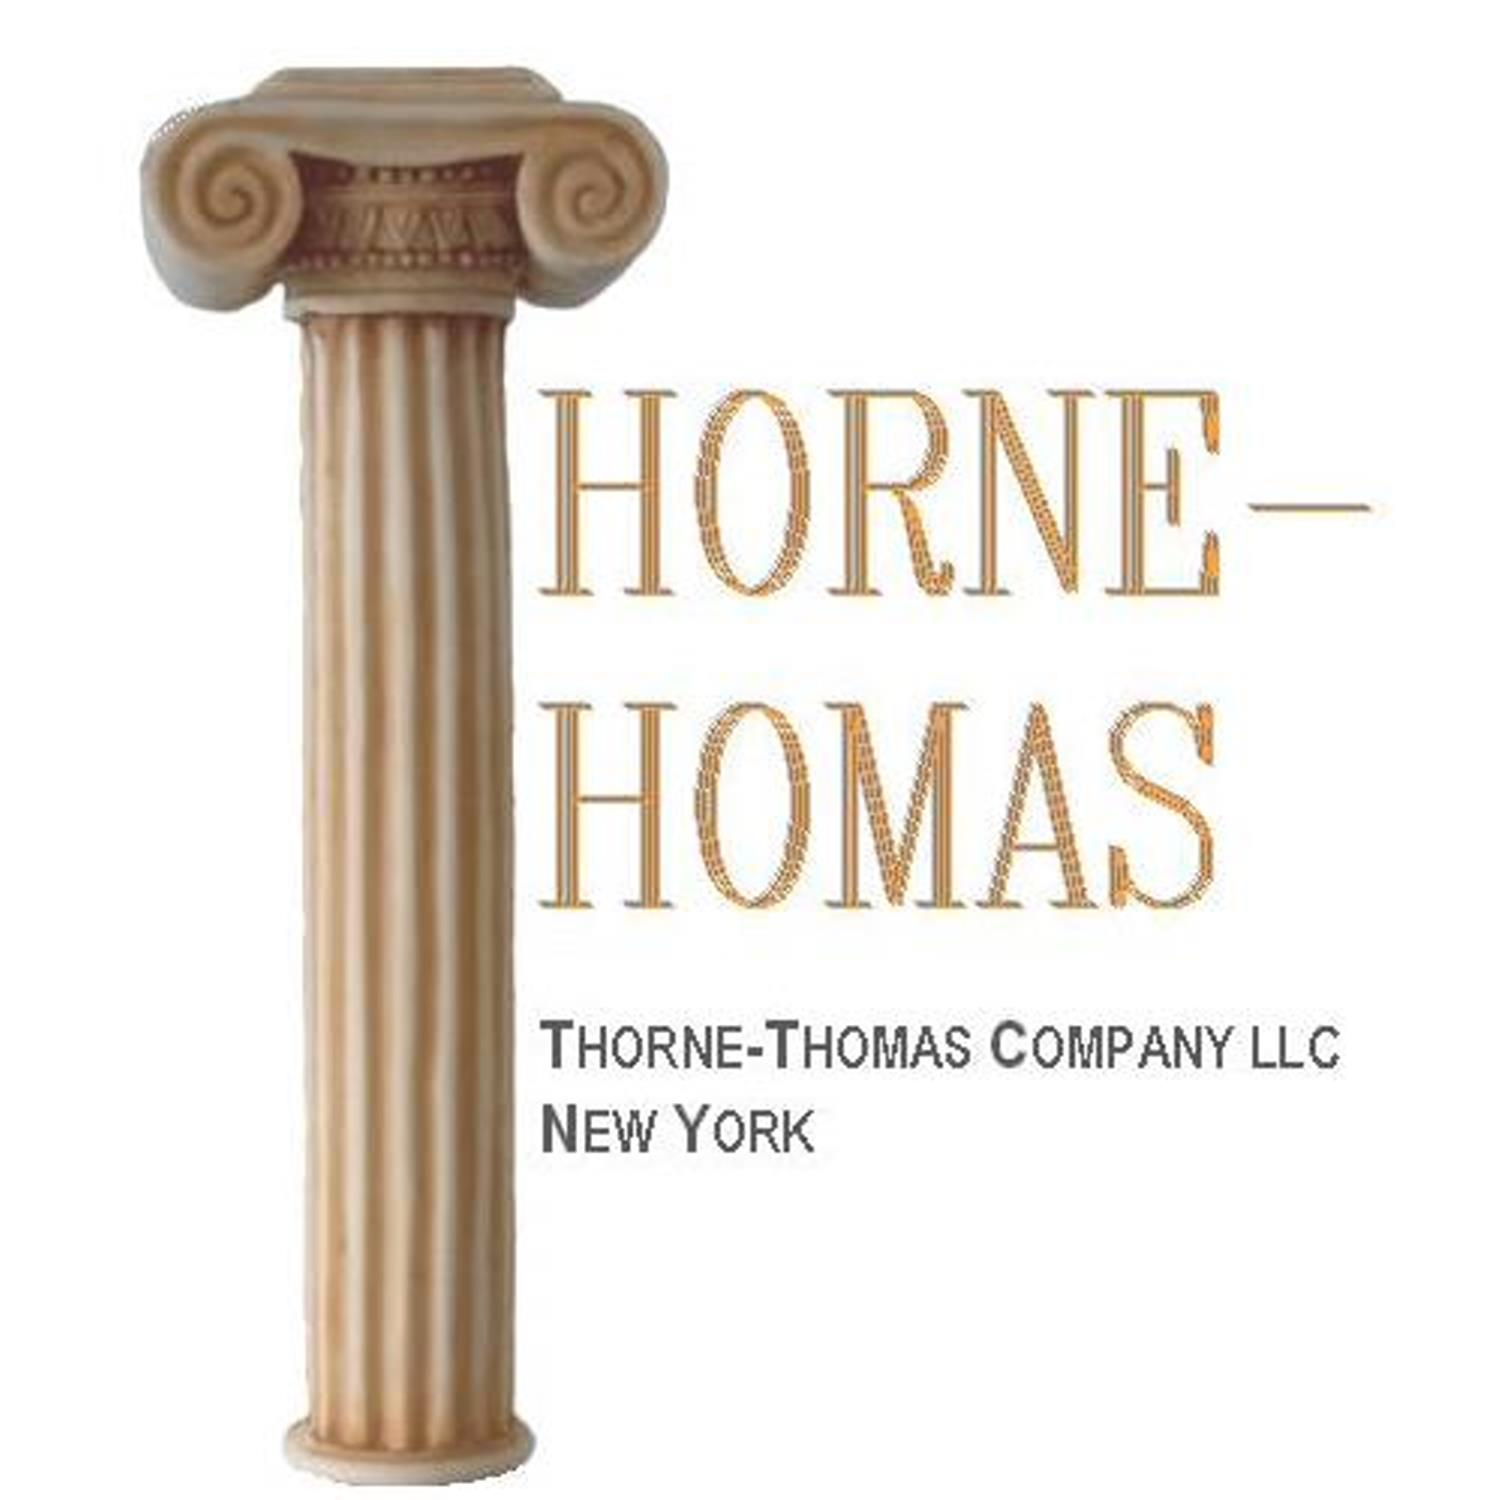 The Thorne-Thomas Company Podcast